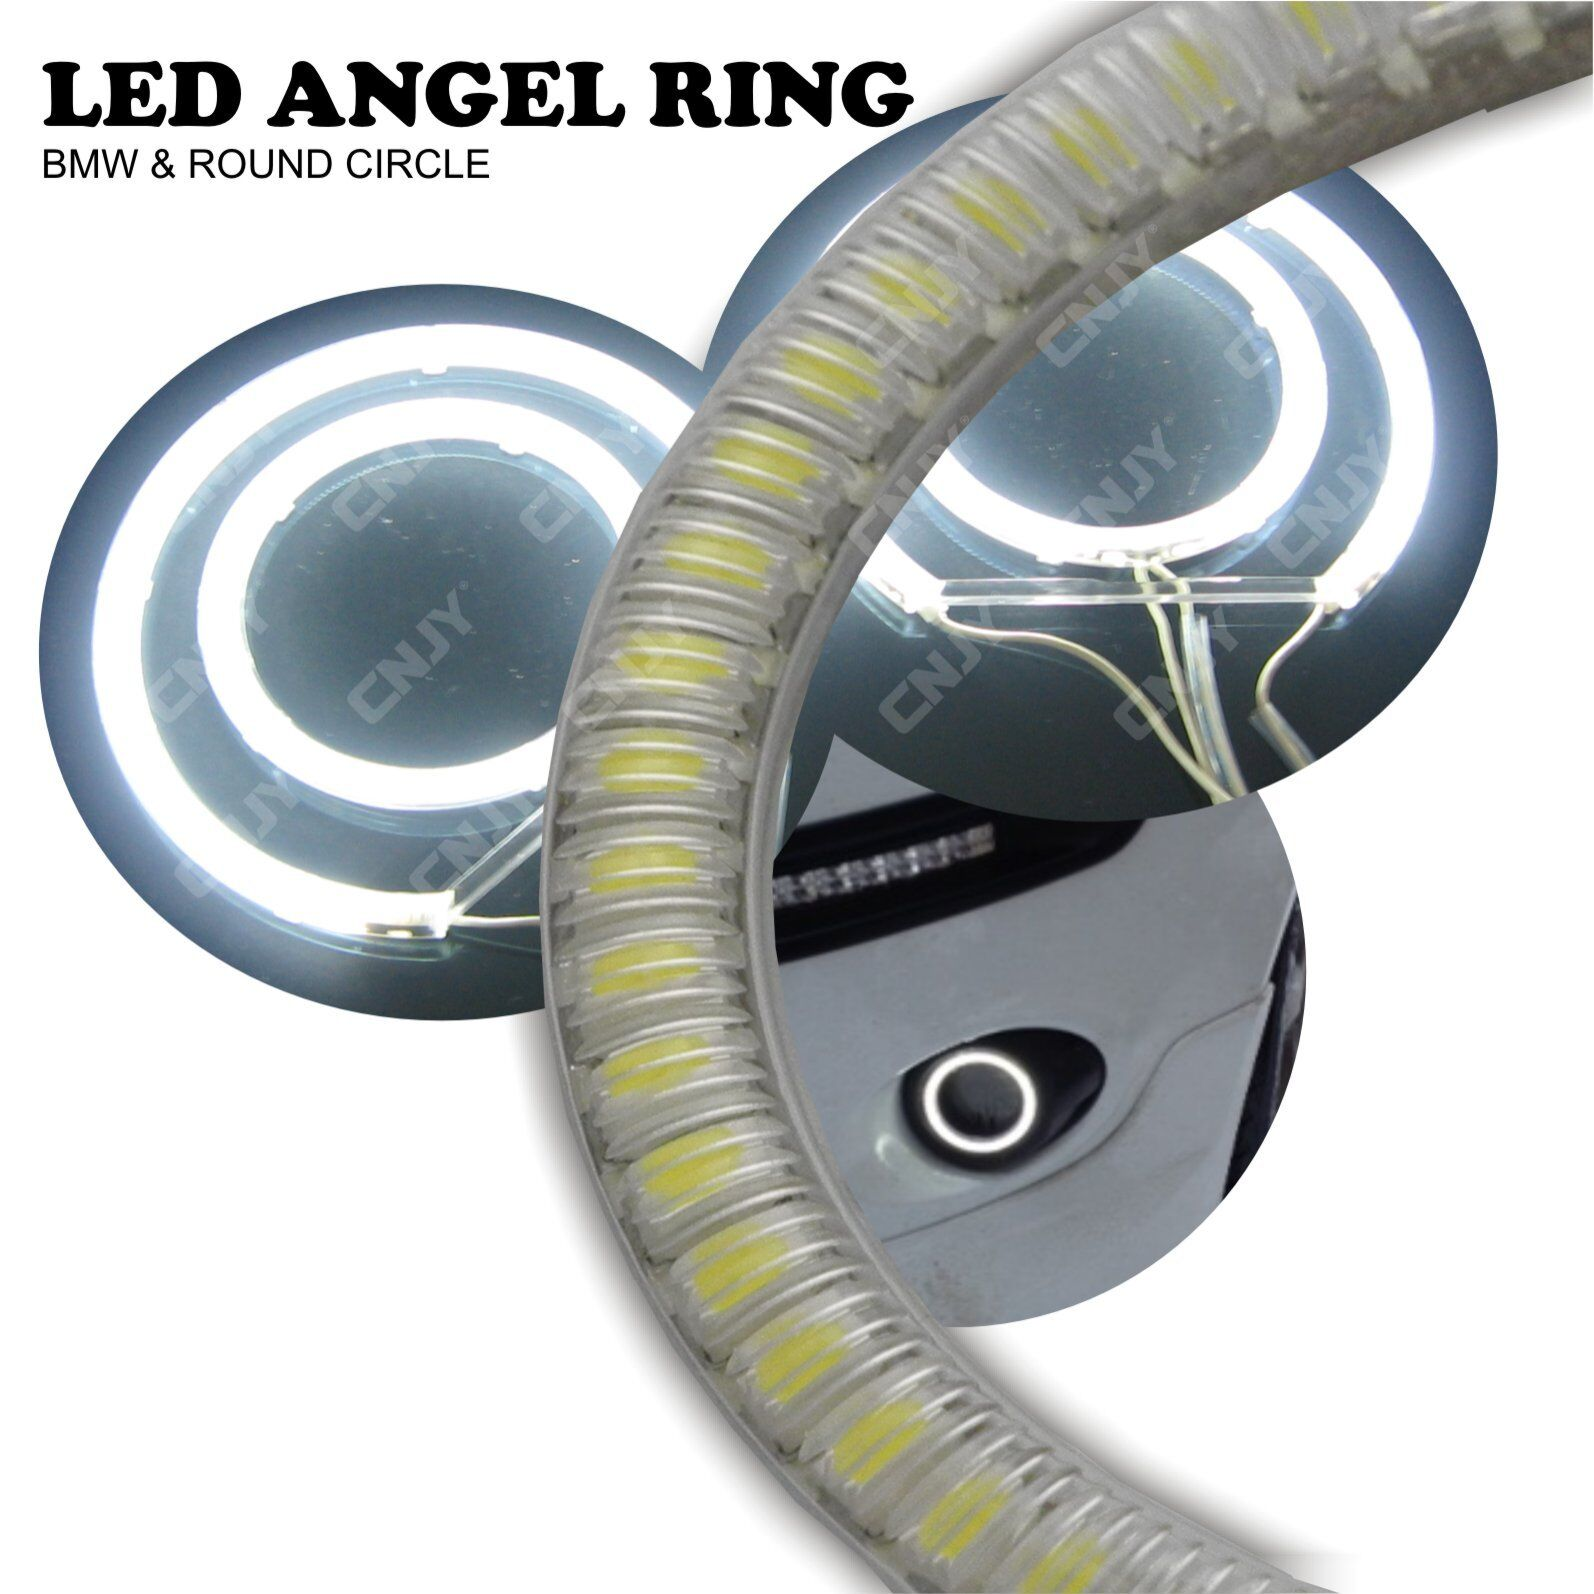 KIT LED ANGEL EYES LED LED LED CERCLE LUMINEUX POUR PHARE BMW E46 E36 E96 & DIVERS 12V c21bed